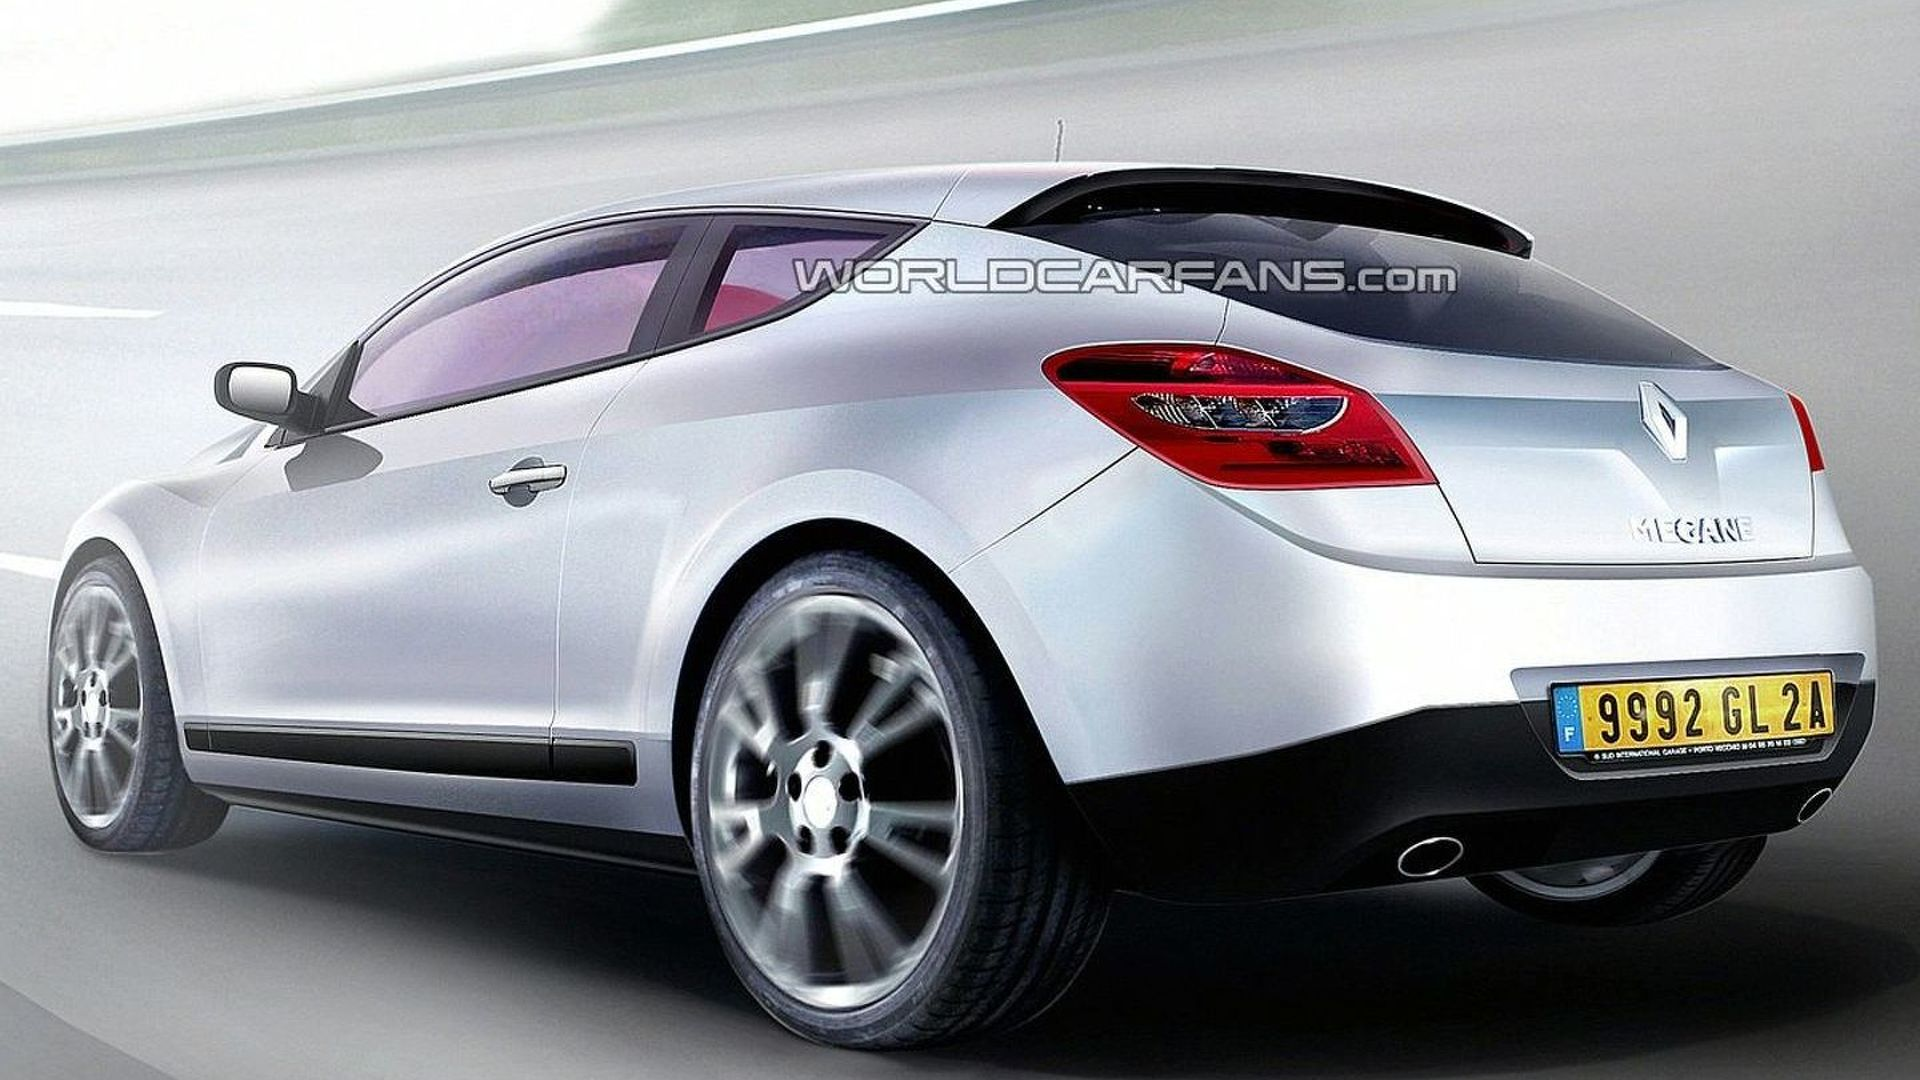 Renault Megane III Coupe Latest Rendering and Spy Photos